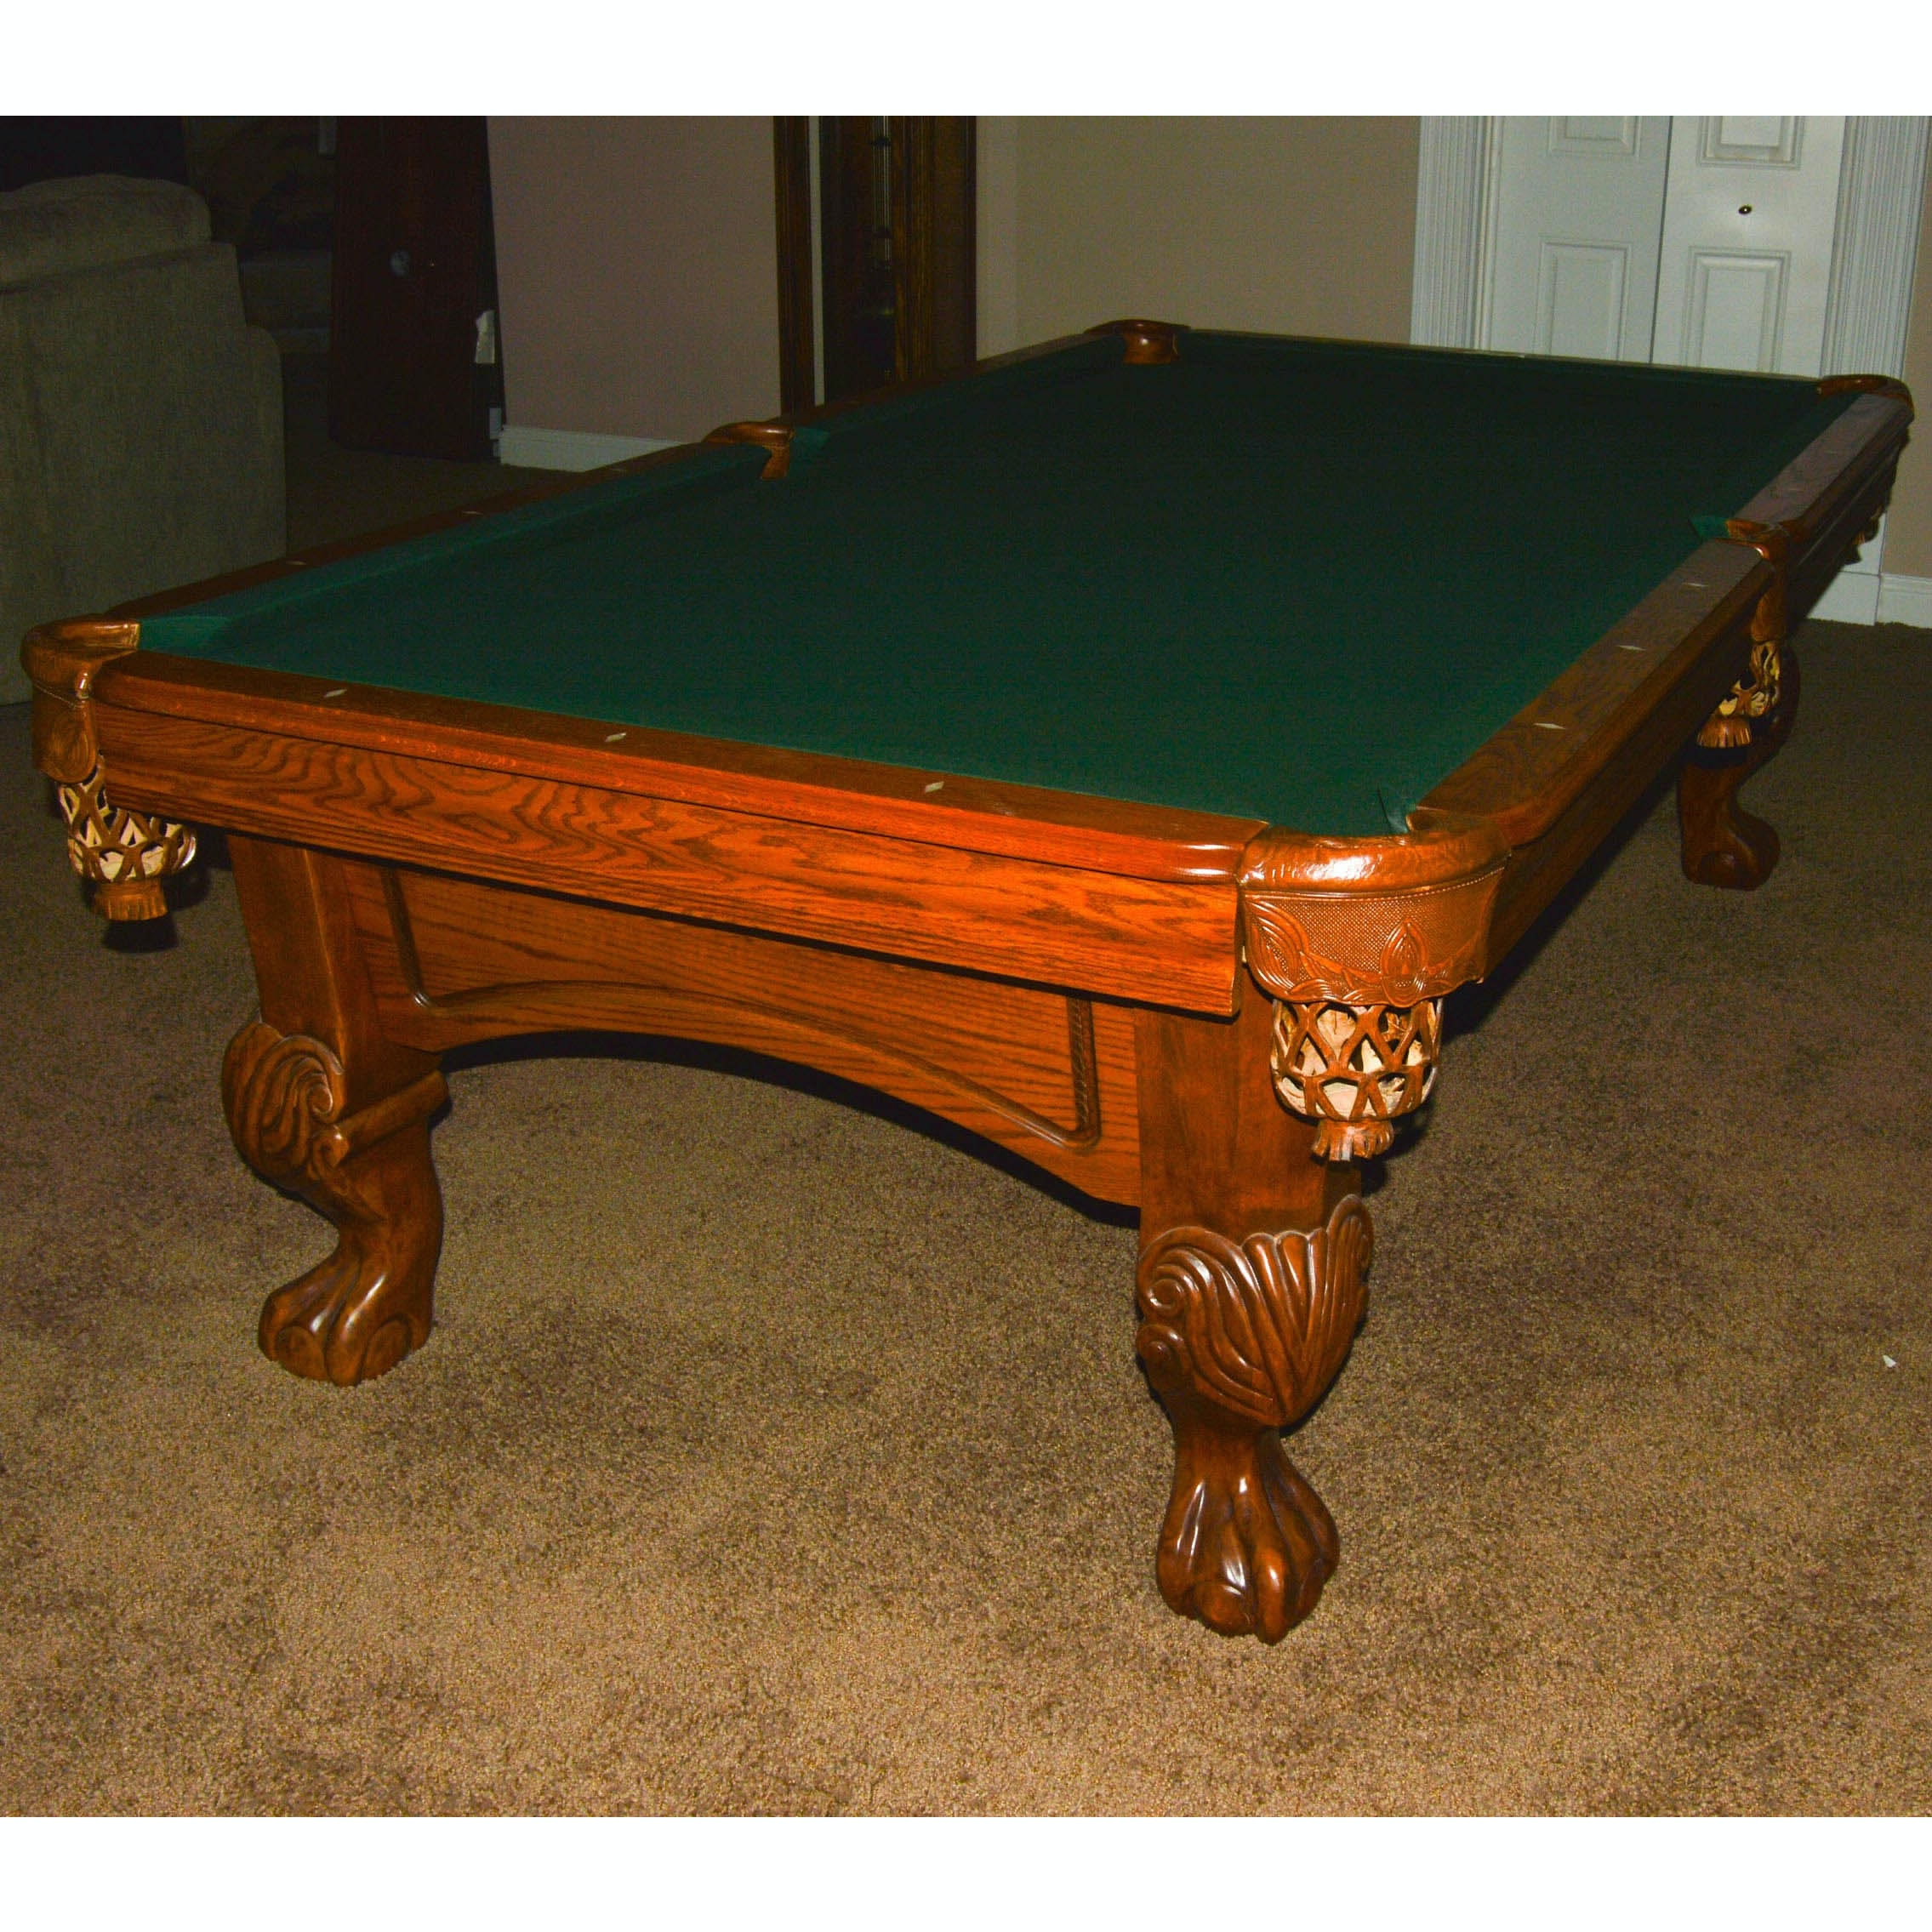 High Quality World Of Leisure Ornate Oak Pool Table ...